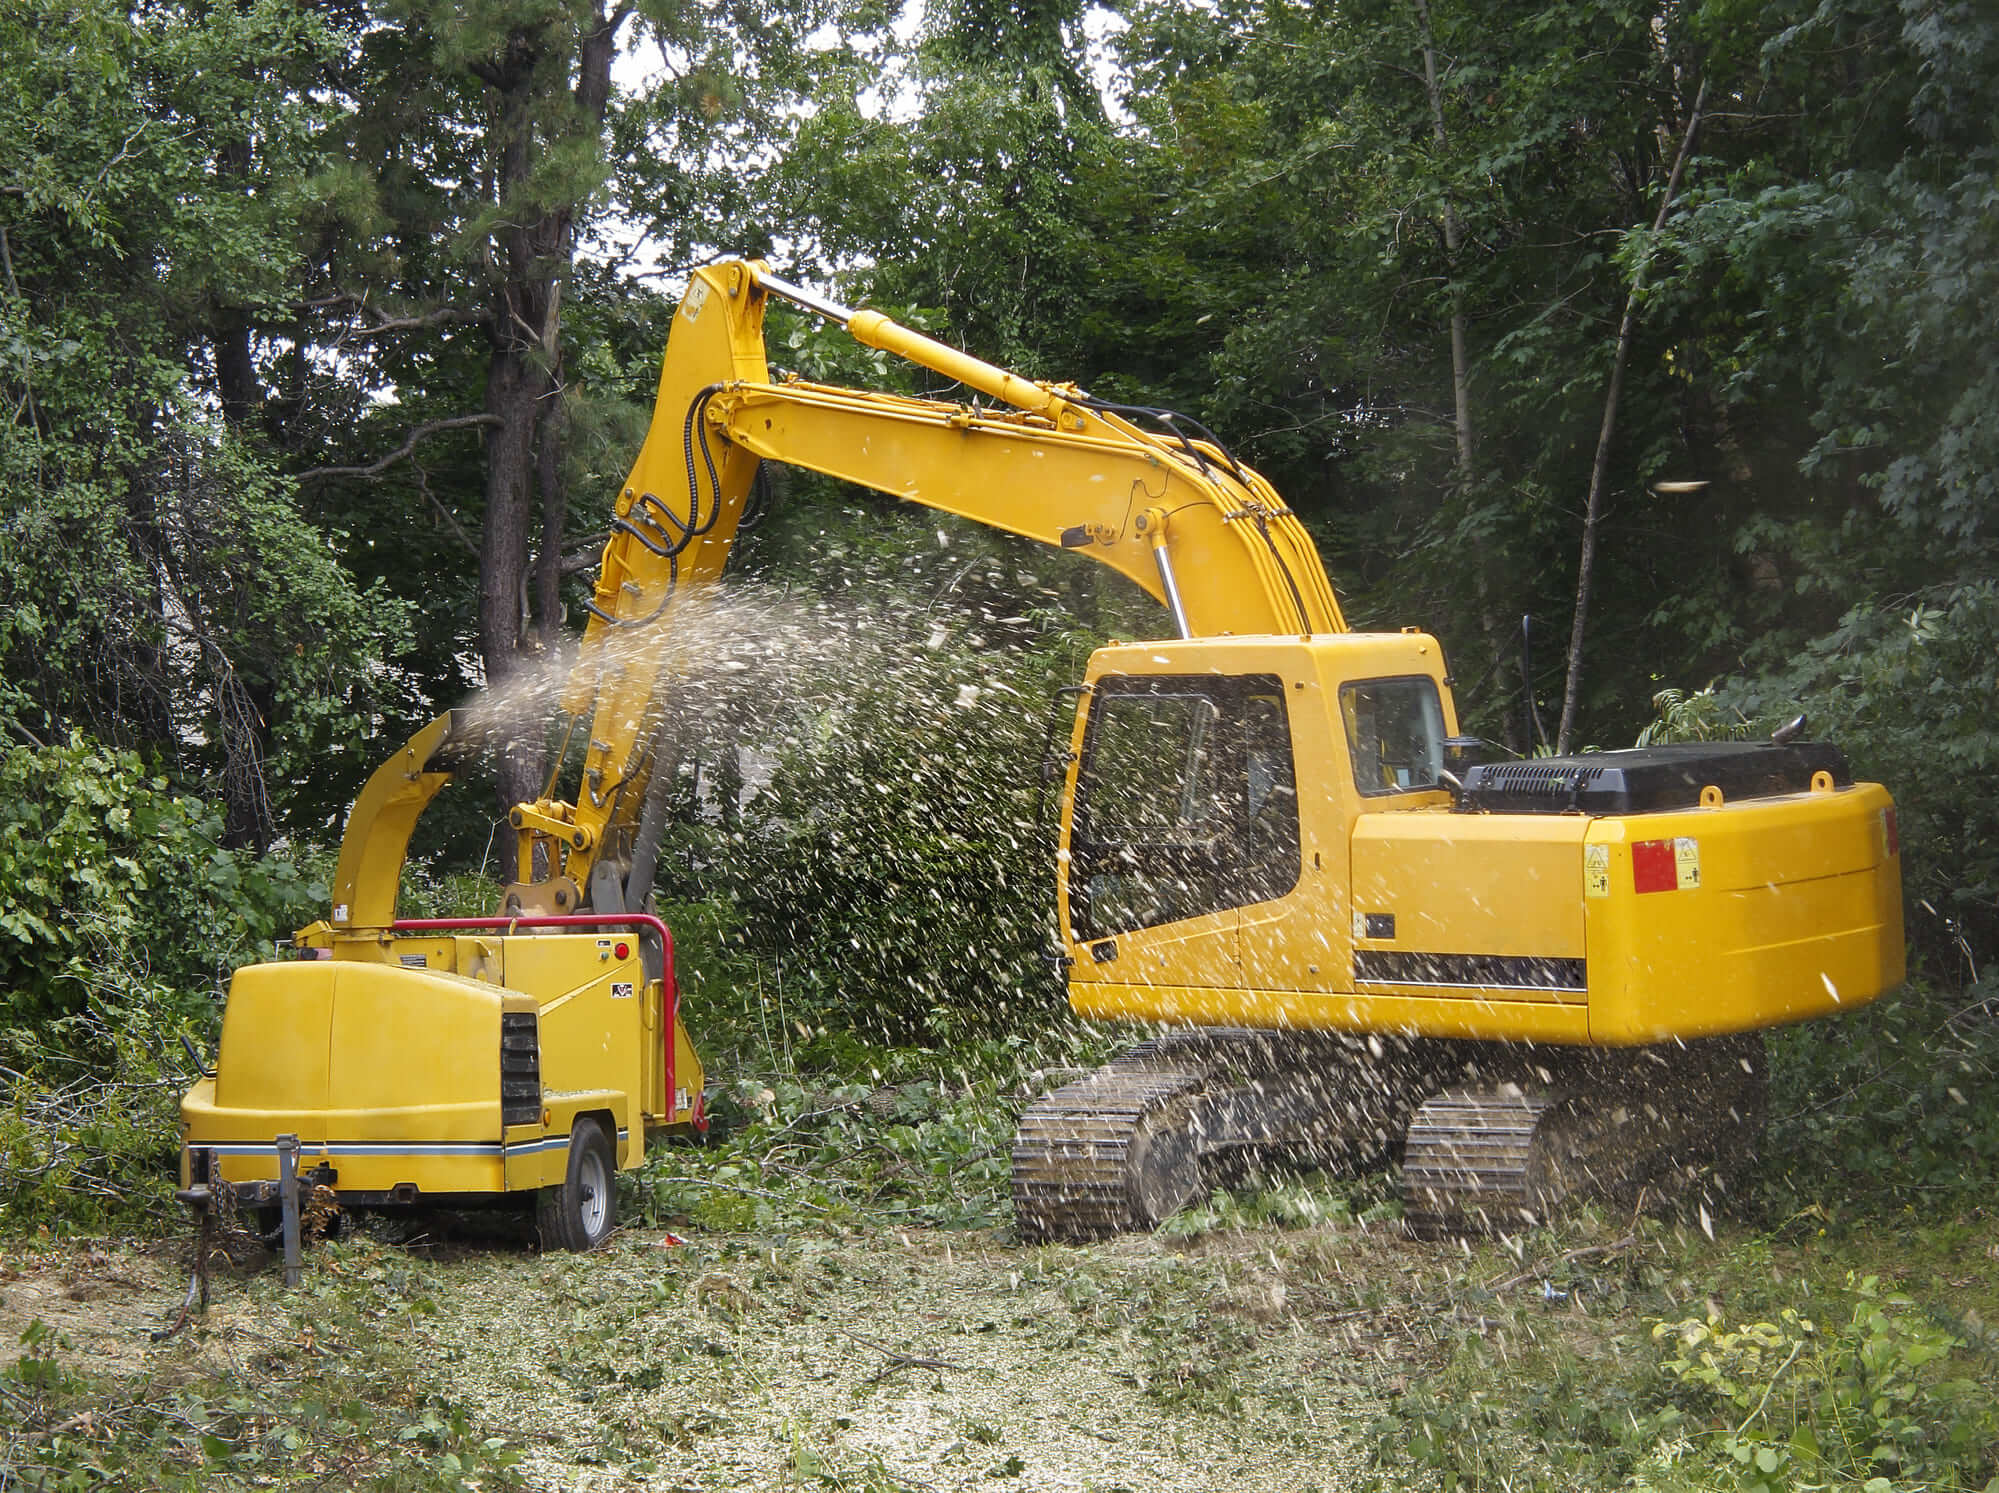 mandeville tree services - Big Easy Tree Removal